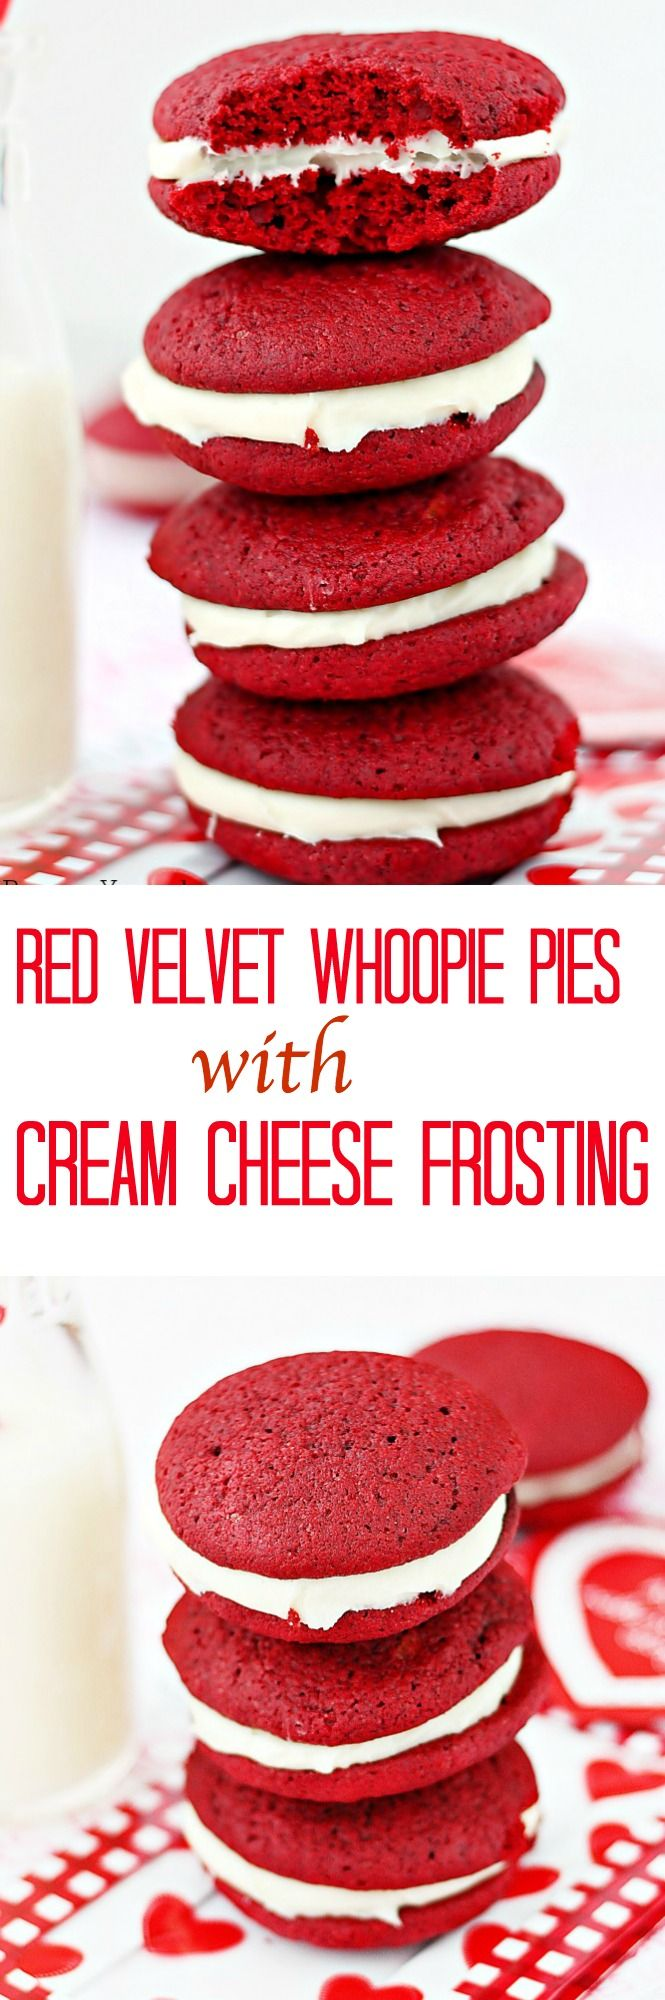 Red velvet whoopie pies with cream cheese frosting - Soft, cake-like red velvet cookies sandwiched with a smooth sweet cream cheese frosting